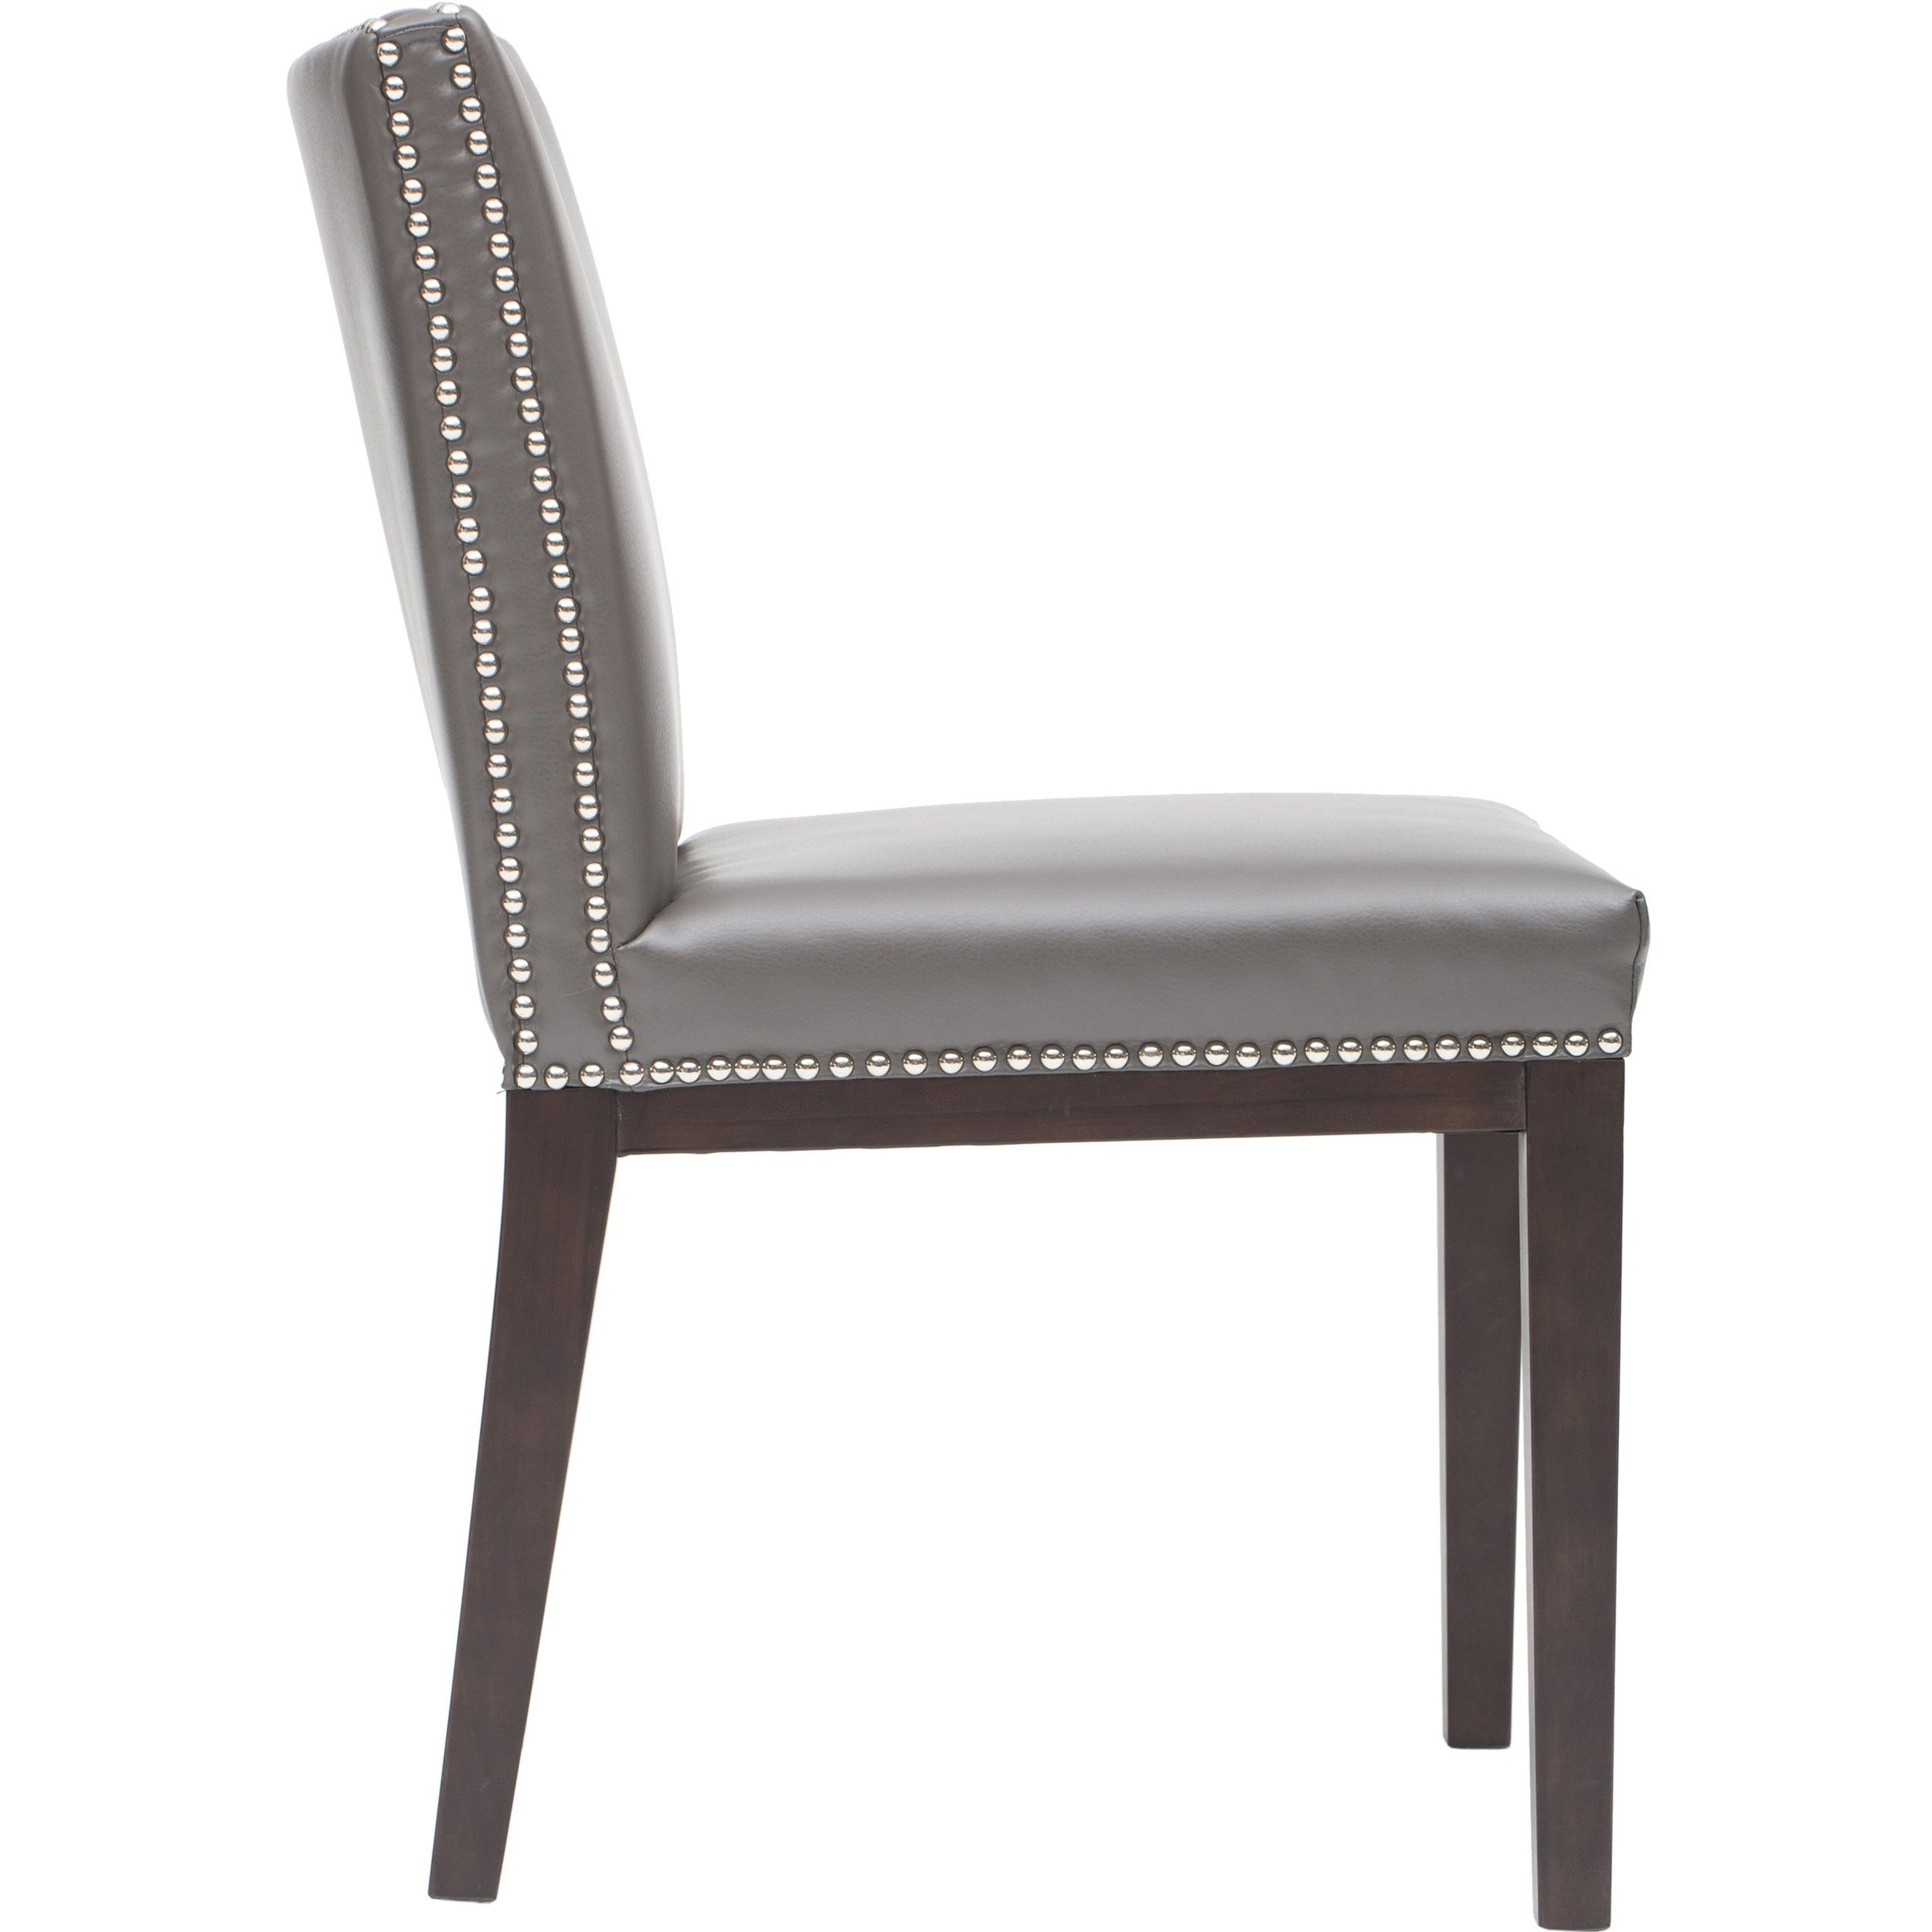 upholstered kitchen chairs Vintage Dining Chair Pic Of Grey Leather